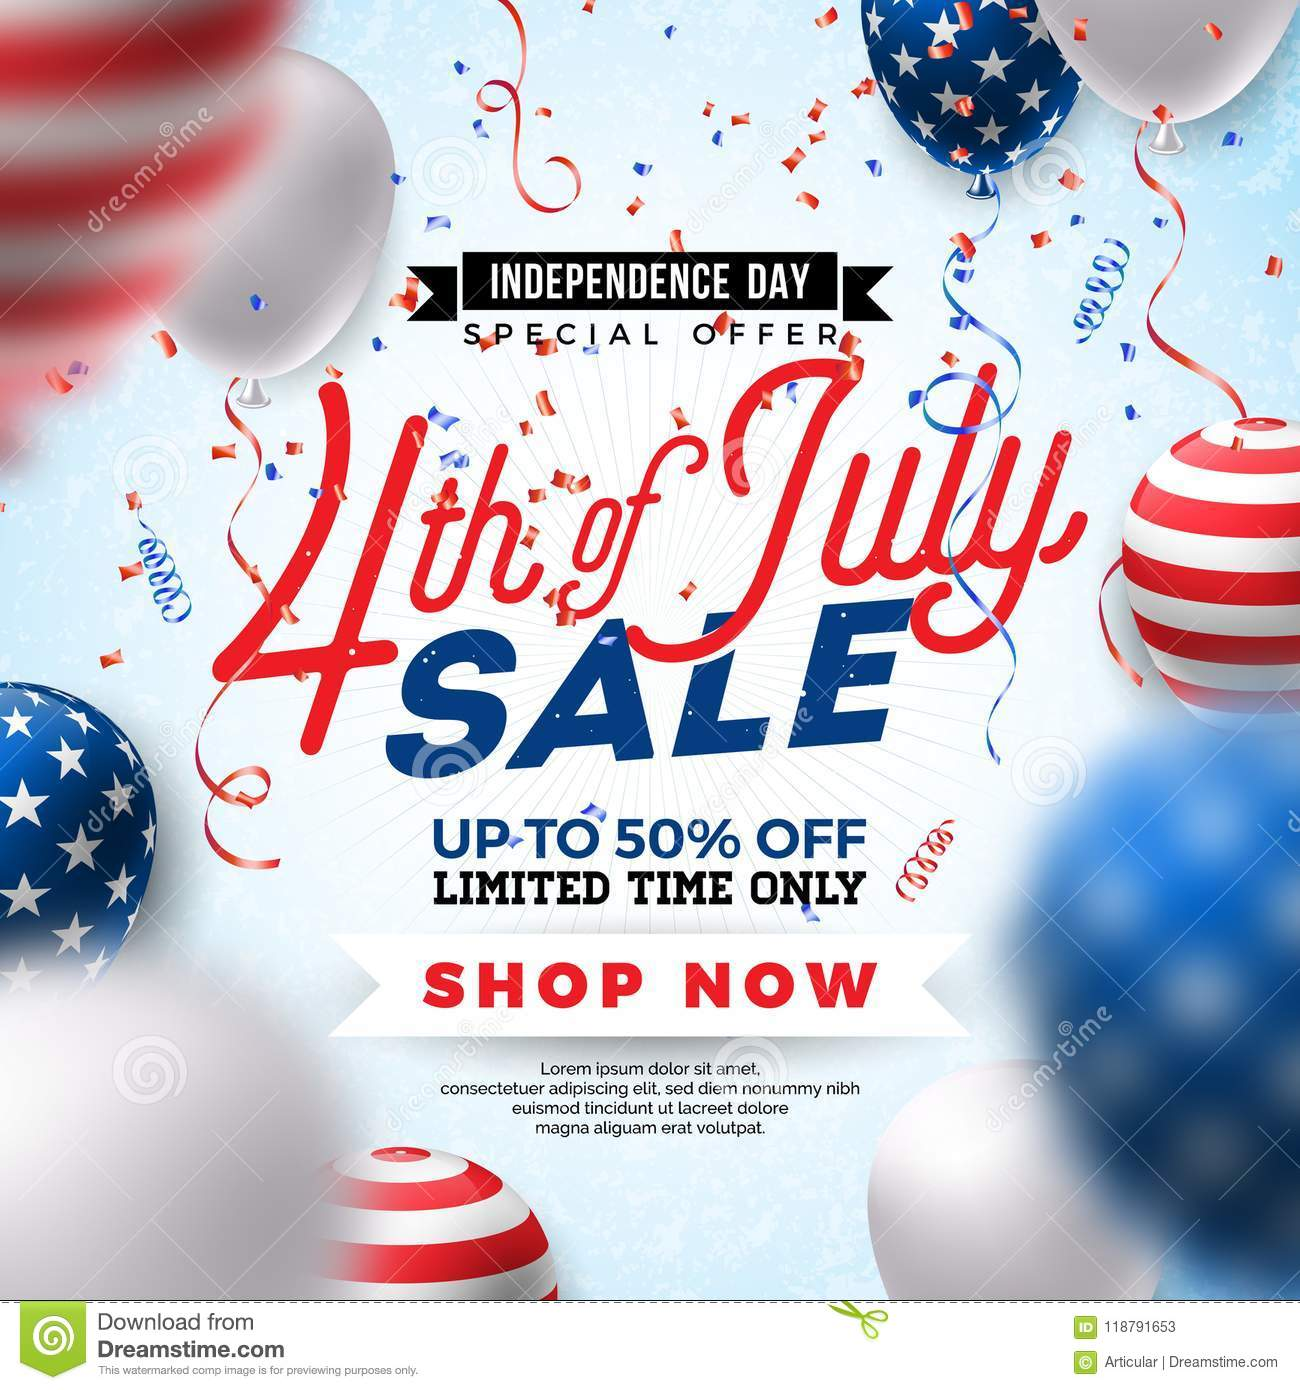 Fourth of July. Independence Day Sale Banner Design with Balloon on Confetti Background. USA National Holiday Vector